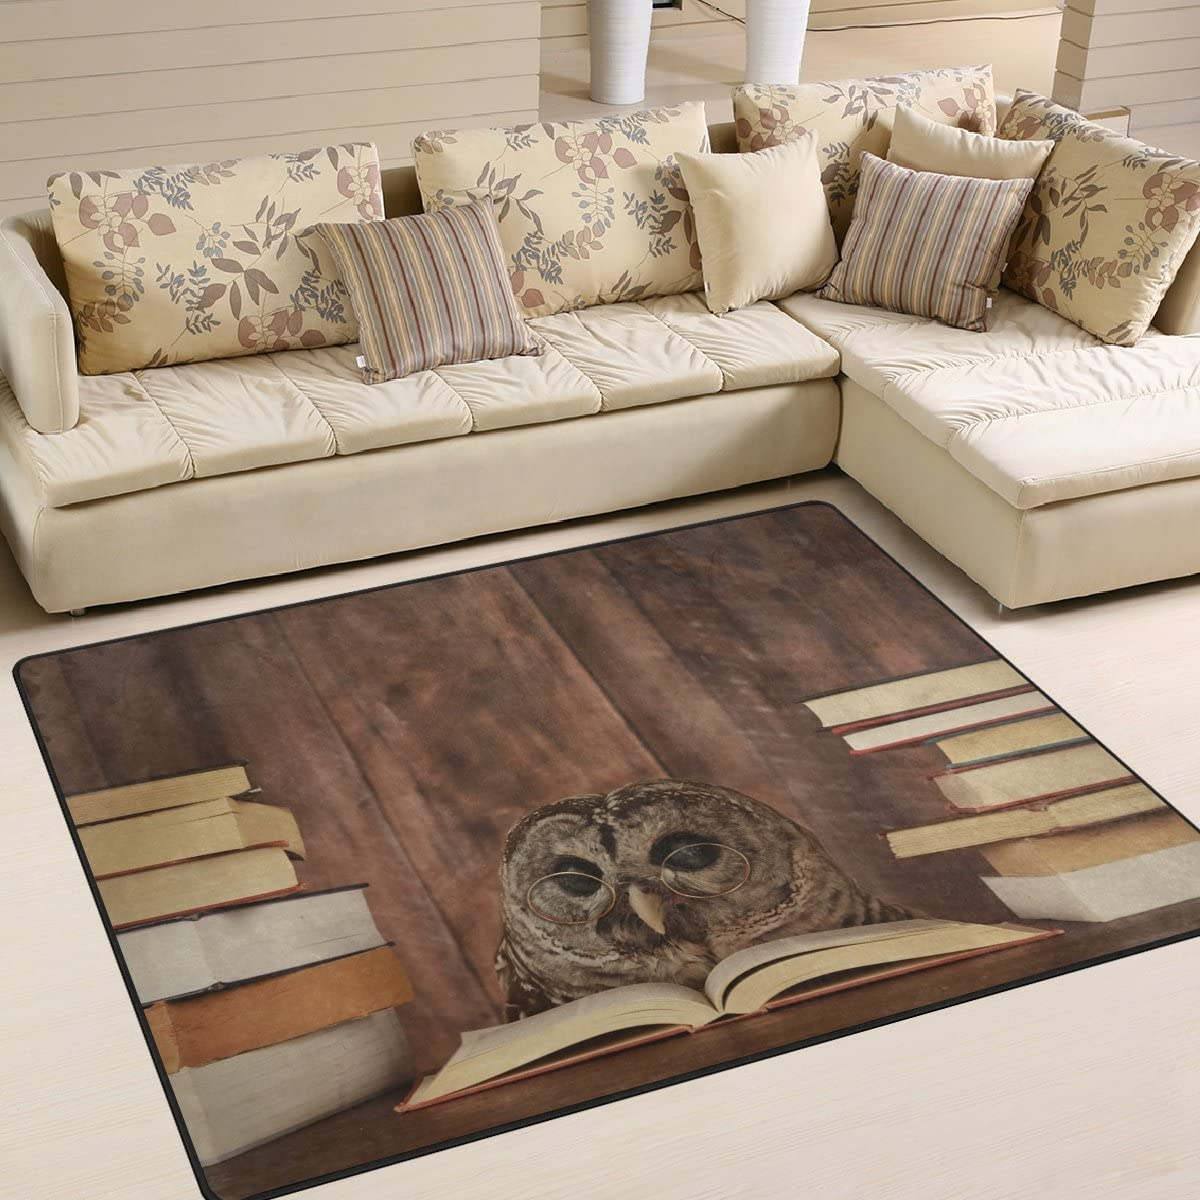 ALAZA Cute Owl Reading Book Area Rug Rugs for Living Room Bedroom 7 x 5